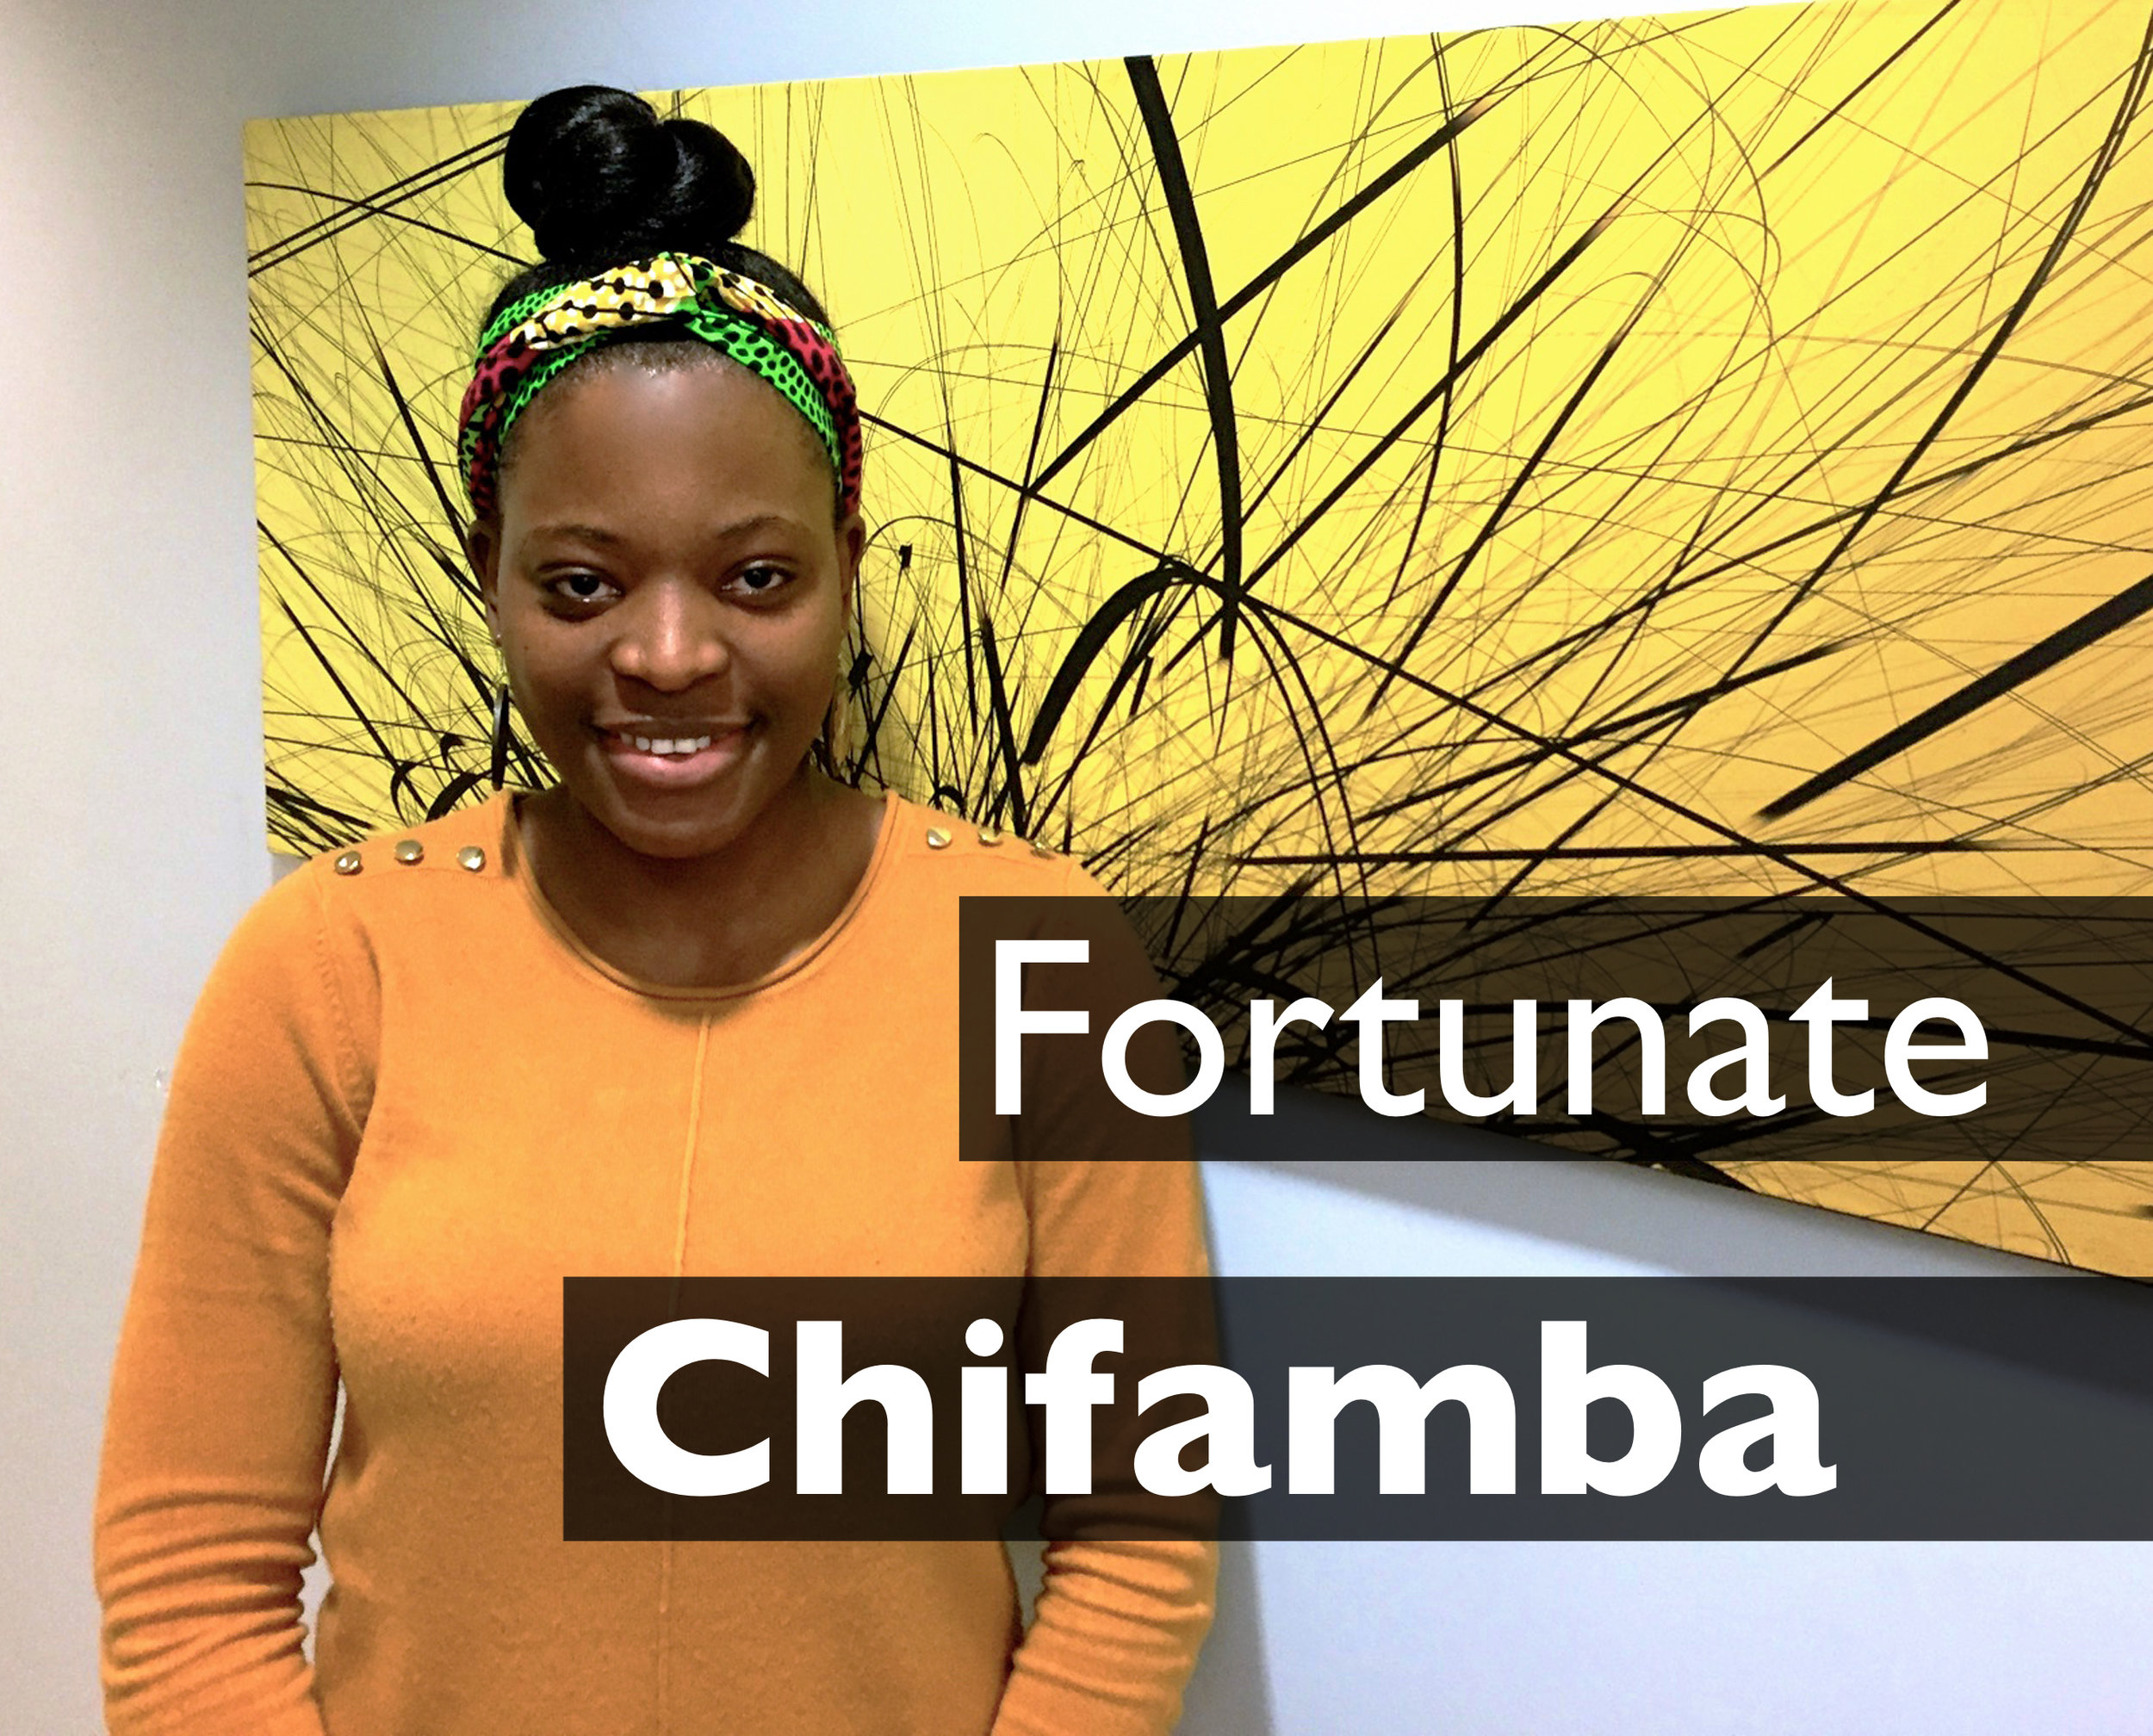 Research Assistant  Fortunate is from Harare, Zimbabwe 🇿🇼 and received her B.A in Biochemistry from Smith College in 2016. She enjoys cooking and baking, and has a passion for fashion and design. She hopes to attend medical school in the future.